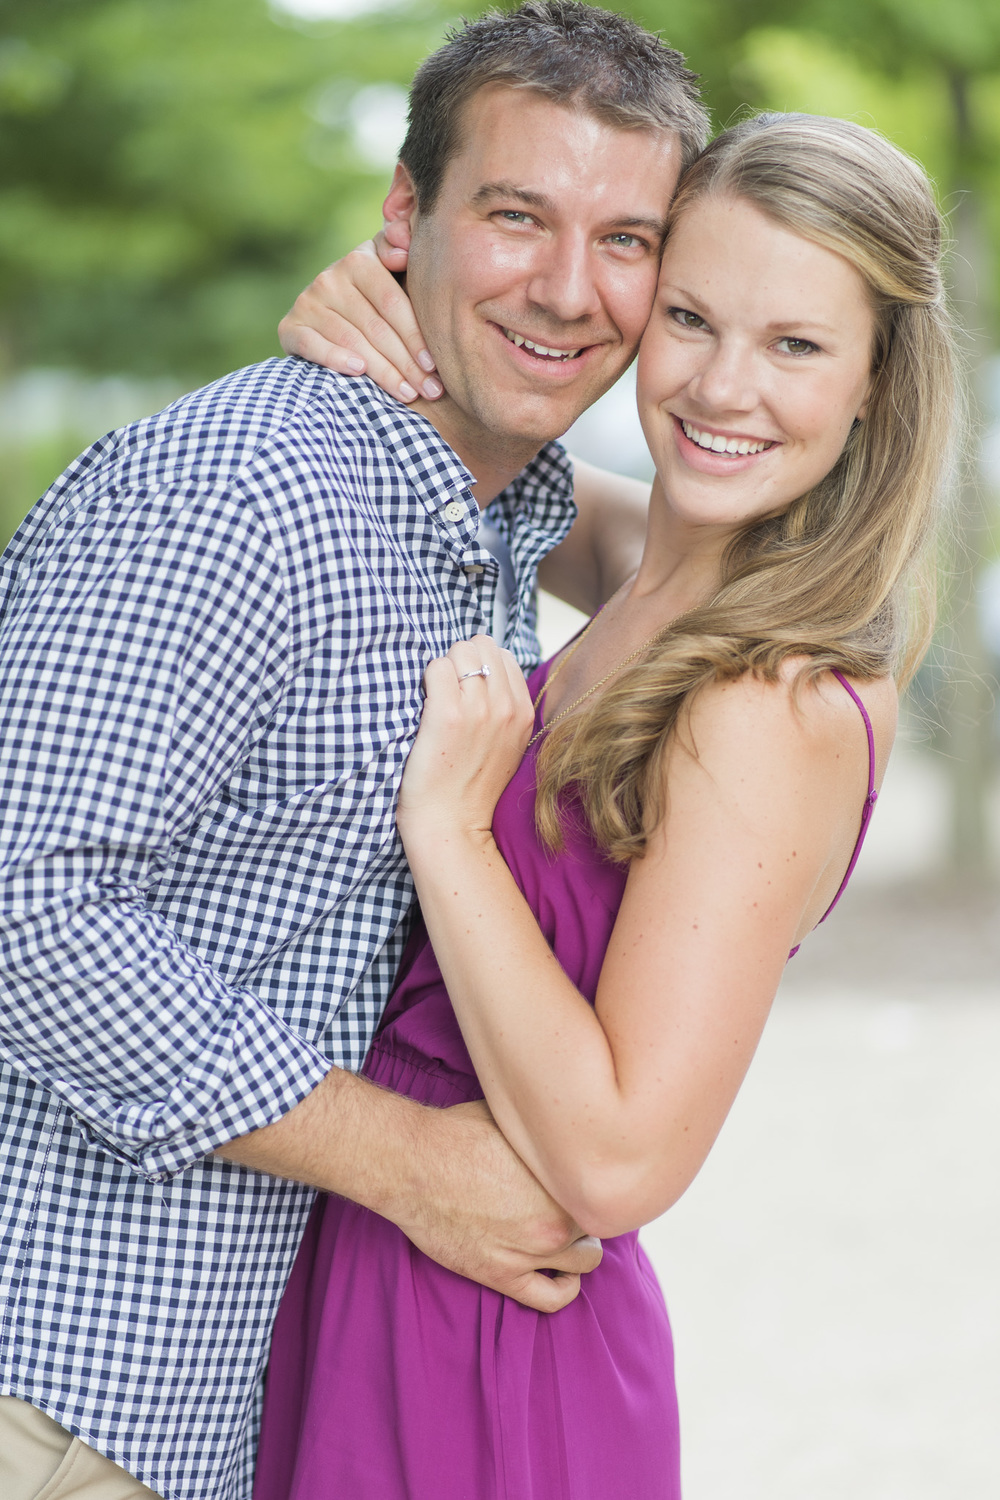 Downtown_Lynchburg_VA_craddock_Terry_Water_Fountain_Engagement_Session_Photos288.jpg